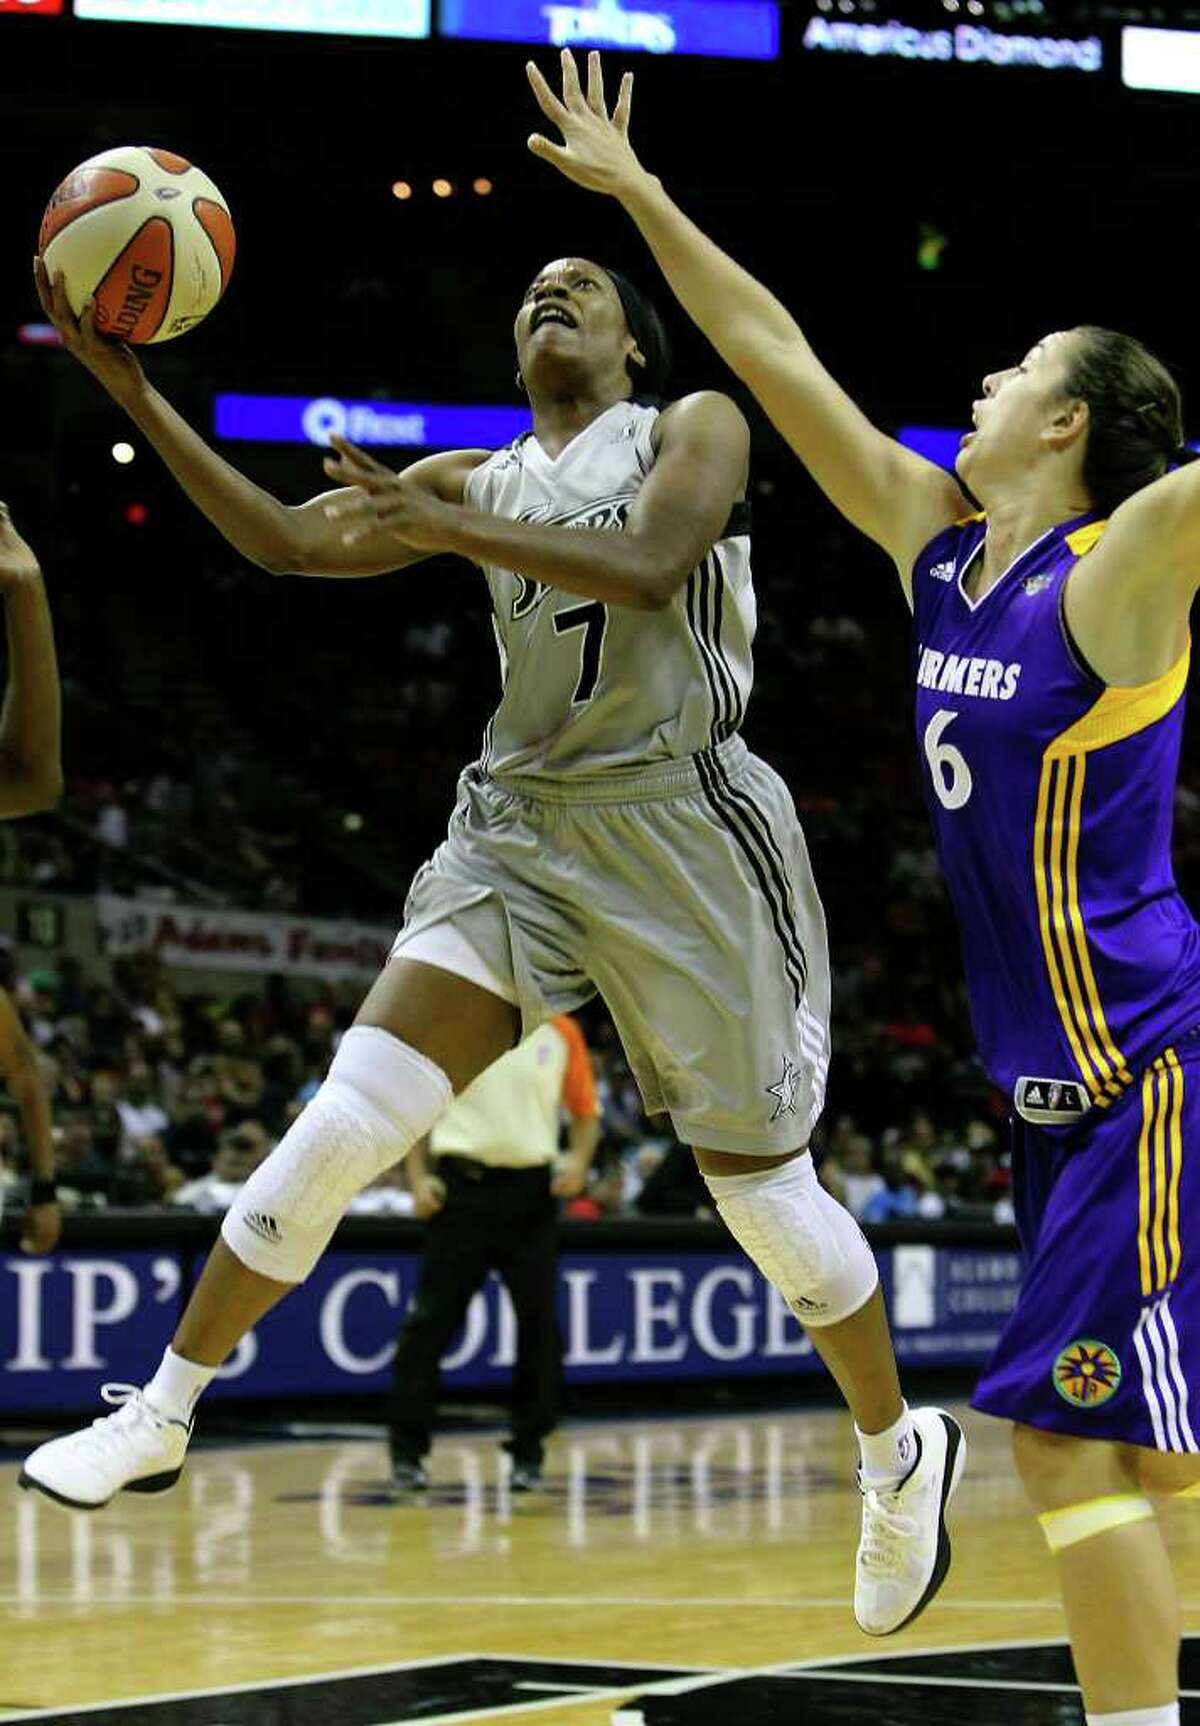 Silver Stars' Jia Perkins (07) goes for score against Los Angeles Sparks' Jenna O'Hea (06) in the first half at the AT&T Center on Friday, June 24, 2011. Kin Man Hui/kmhui@express-news.net